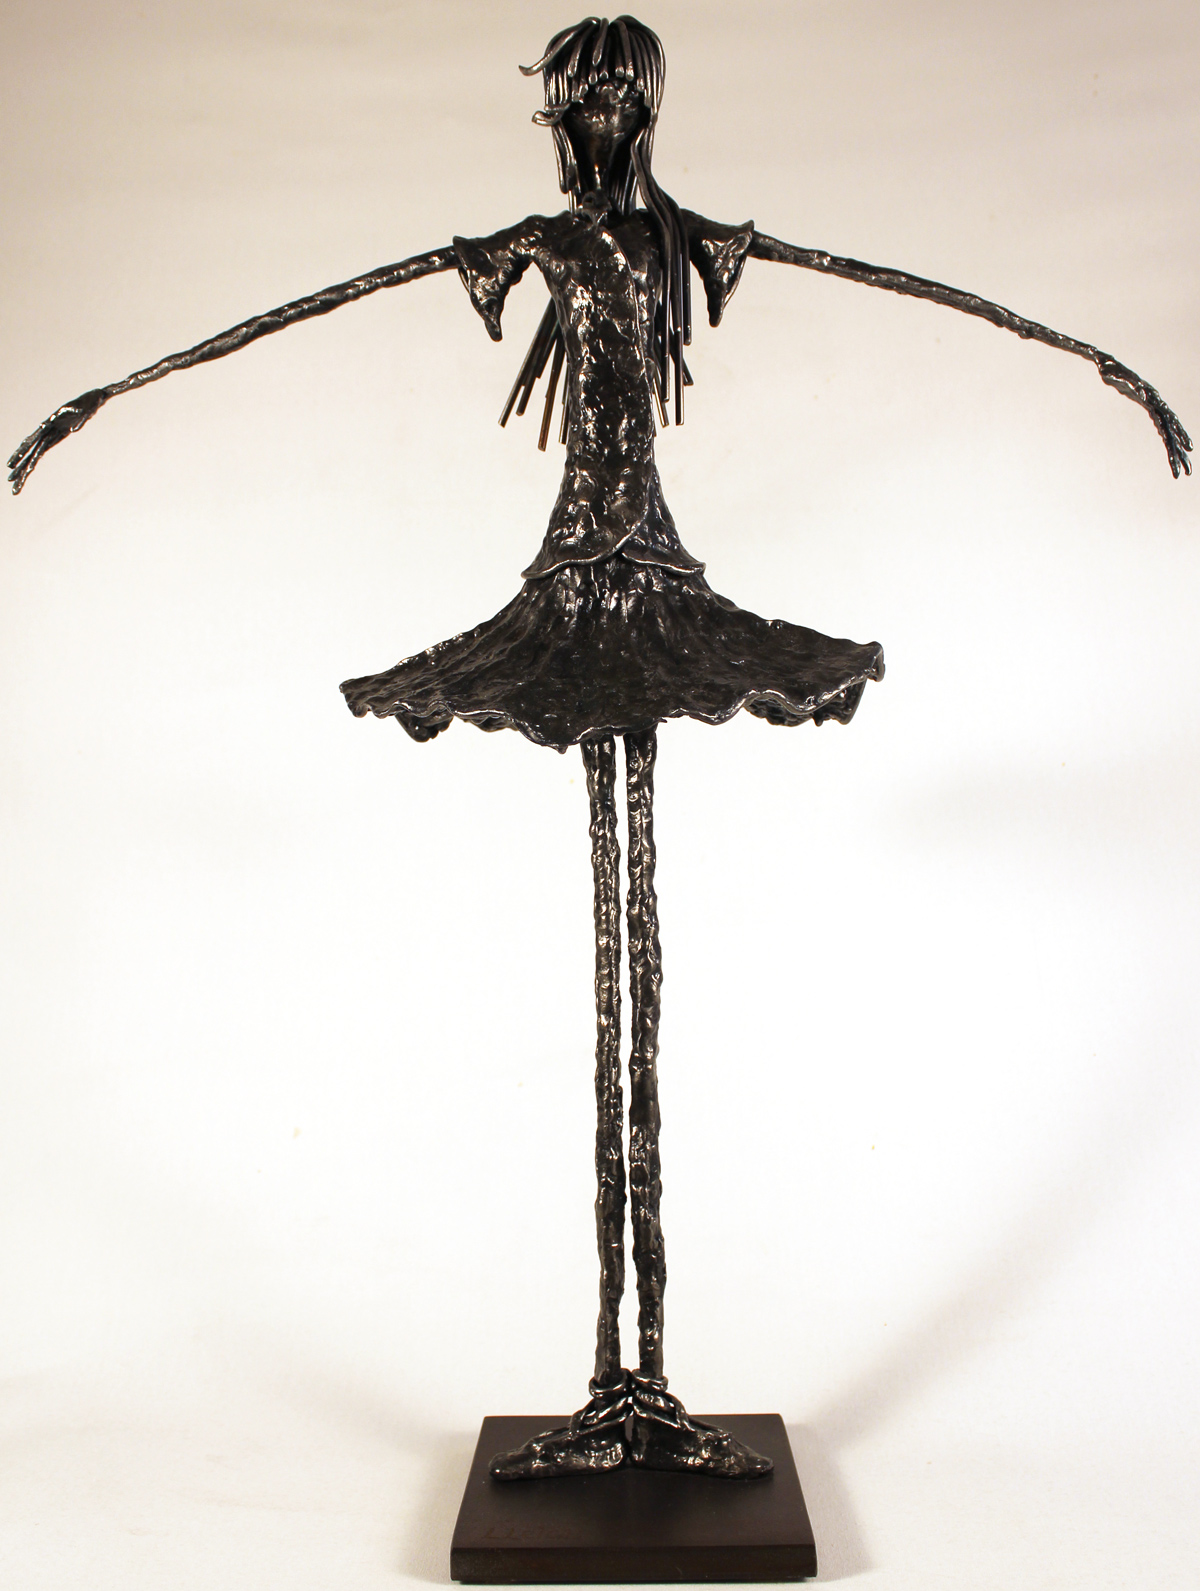 Leon Leigh, Steel Sculpture, Untitled. Click to enlarge